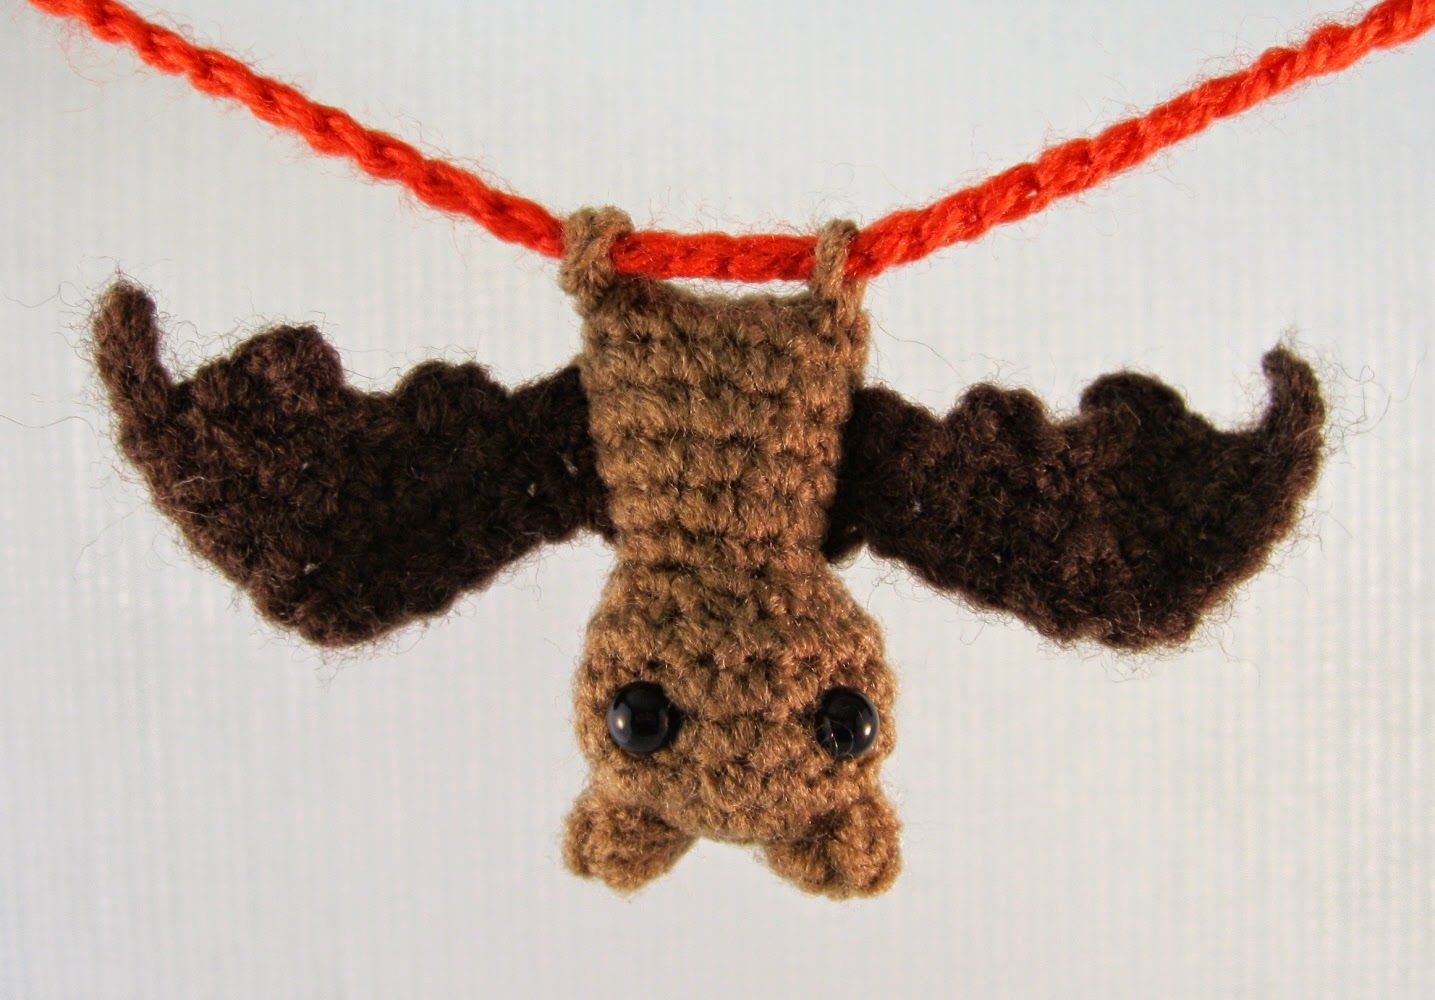 Well, Halloween is nearly upon us, so here is a tiny little bat ...